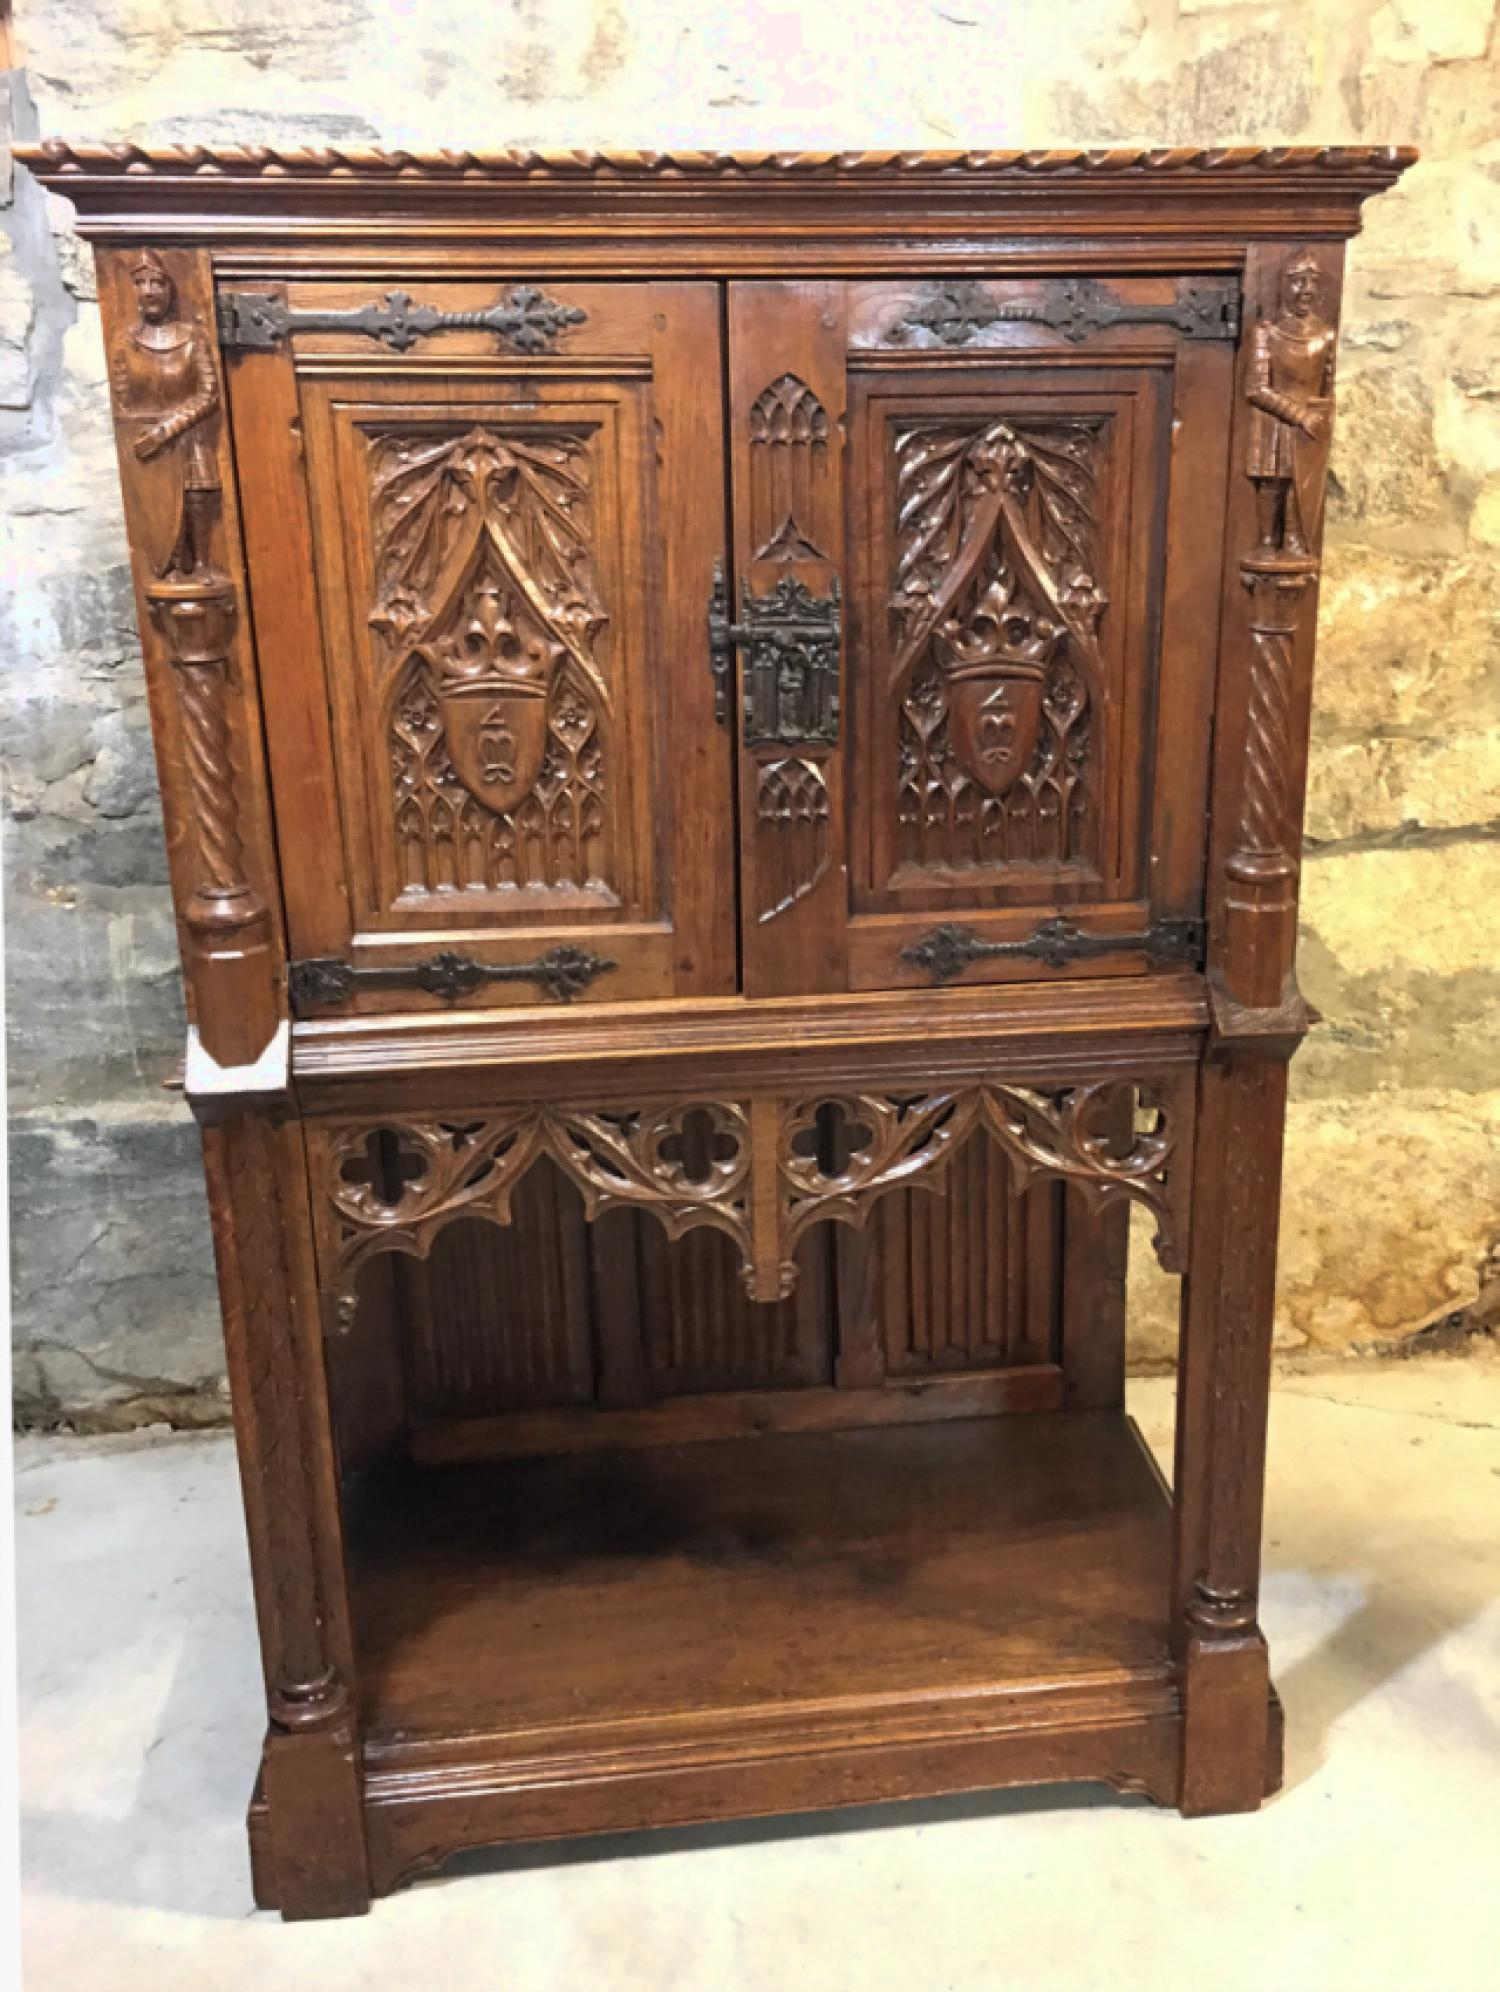 Oak Gothic Revival court cupboard c1880